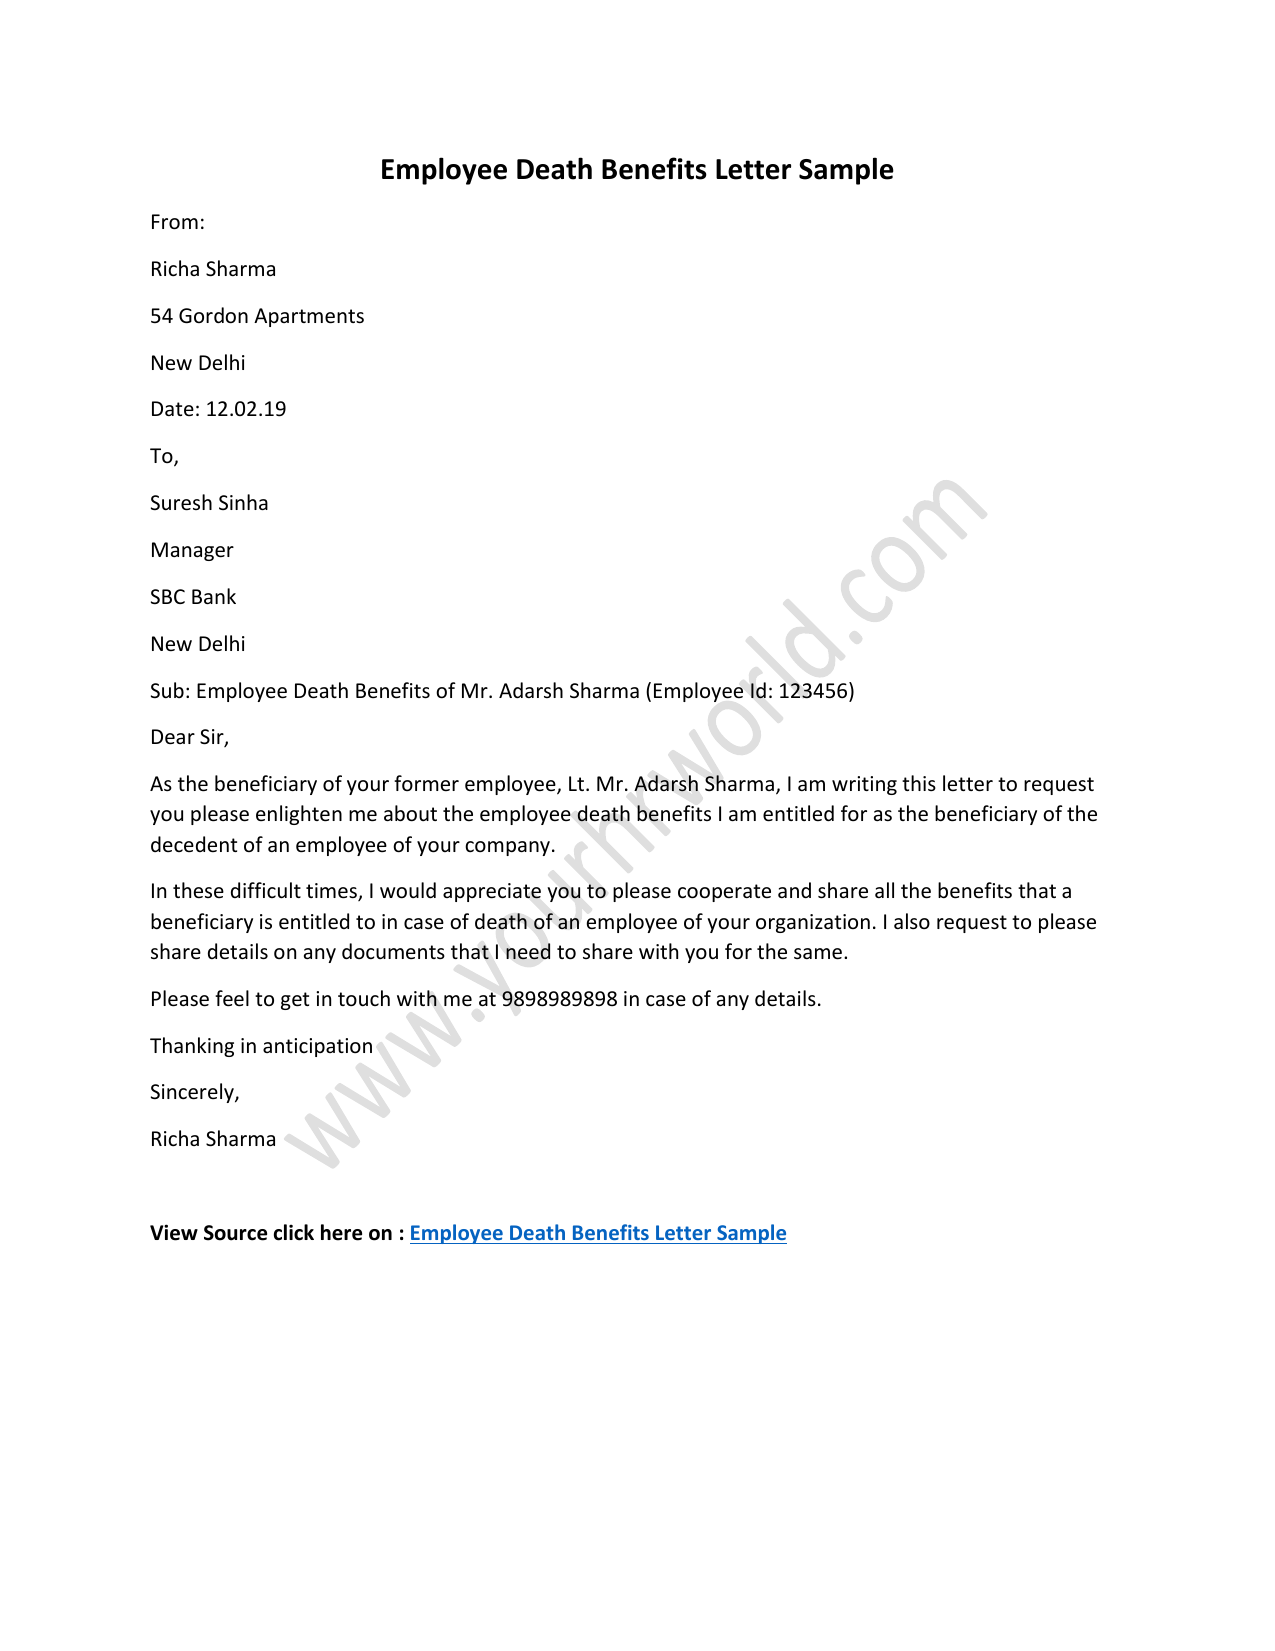 Employee Death Benefits Letter Template, Sample